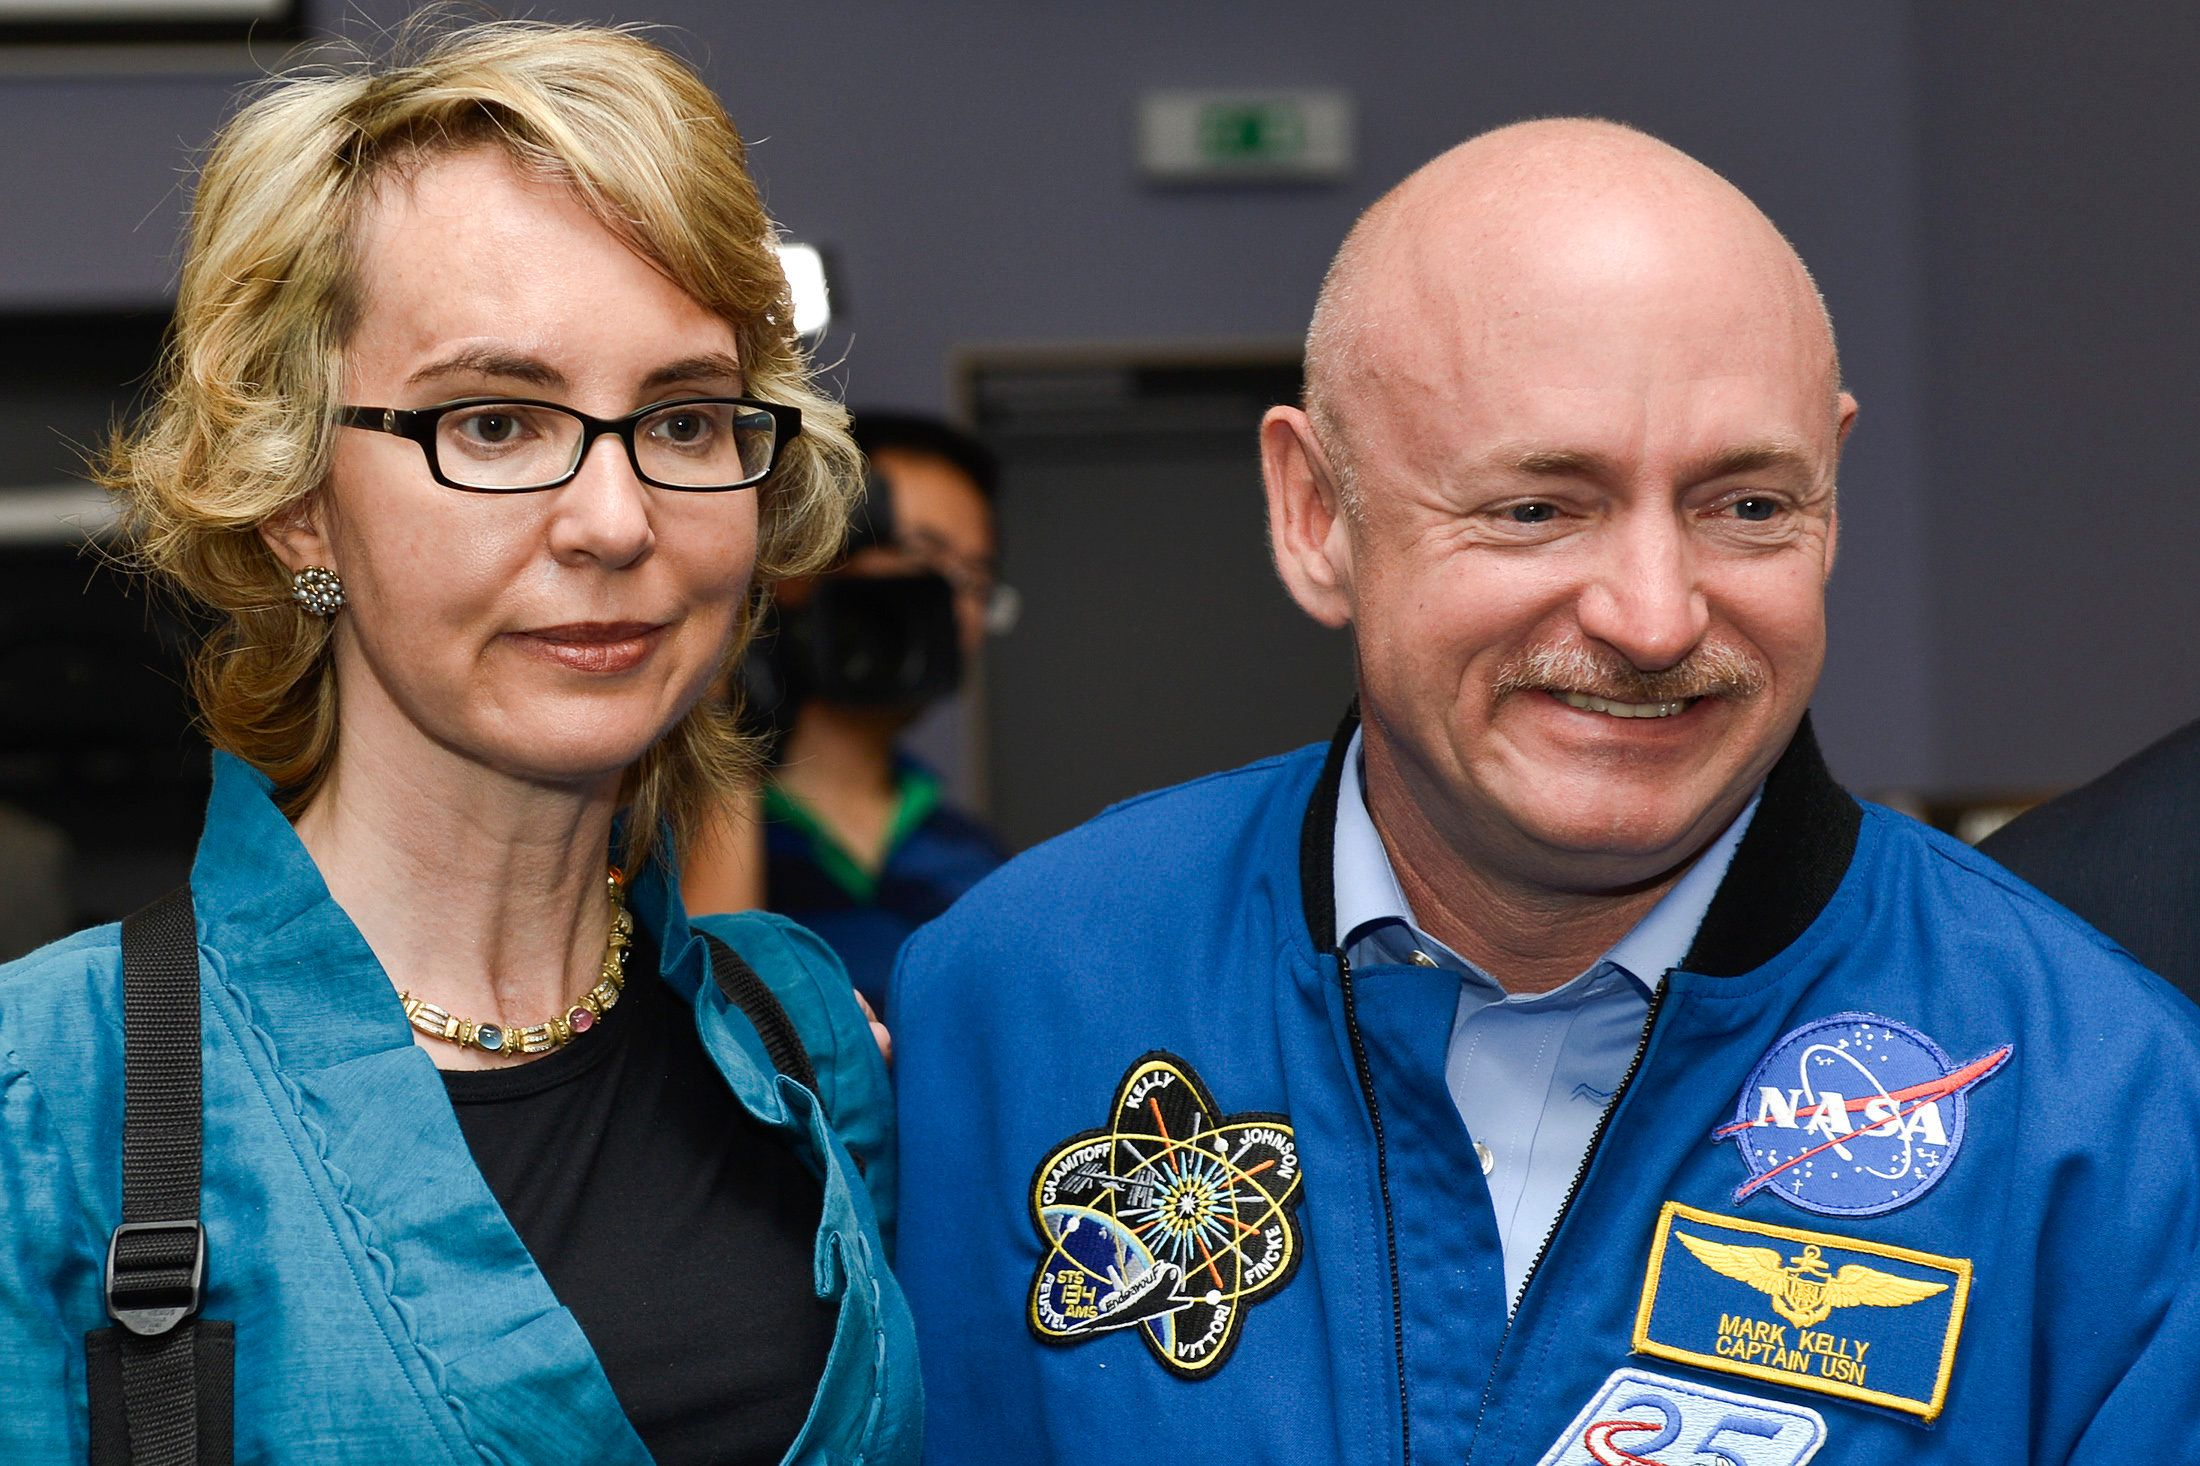 Former U.S. Congresswoman Gabrielle Giffords (L) and her husband Mark Kelly, NASA astronaut and commander of mission STS-134, pose for a picture at the Alpha Magnetic Spectrometer (AMS) Payload Operations and Command Center (POCC) at the European Organization for Nuclear Research (CERN) in Meyrin near Geneva July 25, 2012. The astronauts' visit to the CERN marks the 14th month anniversary of the installation of the cosmic ray detector on the International Space Station (ISS) by the astronauts during the last mission of the space shuttle Endeavour, code-named STS-134, when they flew the Alpha Magnetic Spectrometer for the European Organization for Nuclear Research to the ISS. REUTERS/Valentin Flauraud (SWITZERLAND - Tags: SCIENCE TECHNOLOGY)